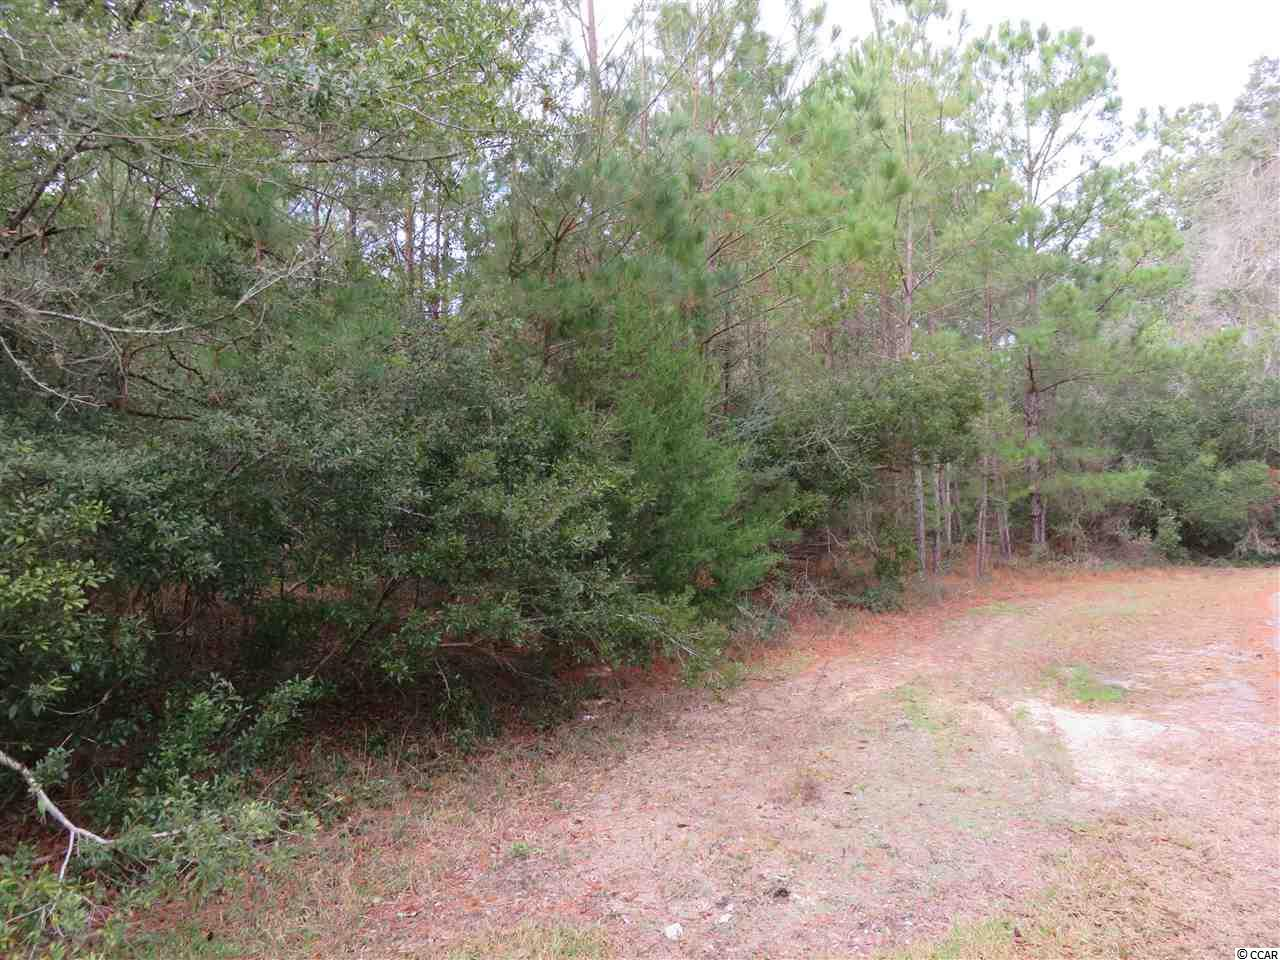 Prime opportunity to own a 1 acre lot in Pawleys Island with no HOA. Awesome location close to Brookgreen Gardens, all the Waccamaw area schools, close to all the shops and dining in the Pawleys island area. Come and build your dream home in the beautiful area of Pawleys Island today!!!